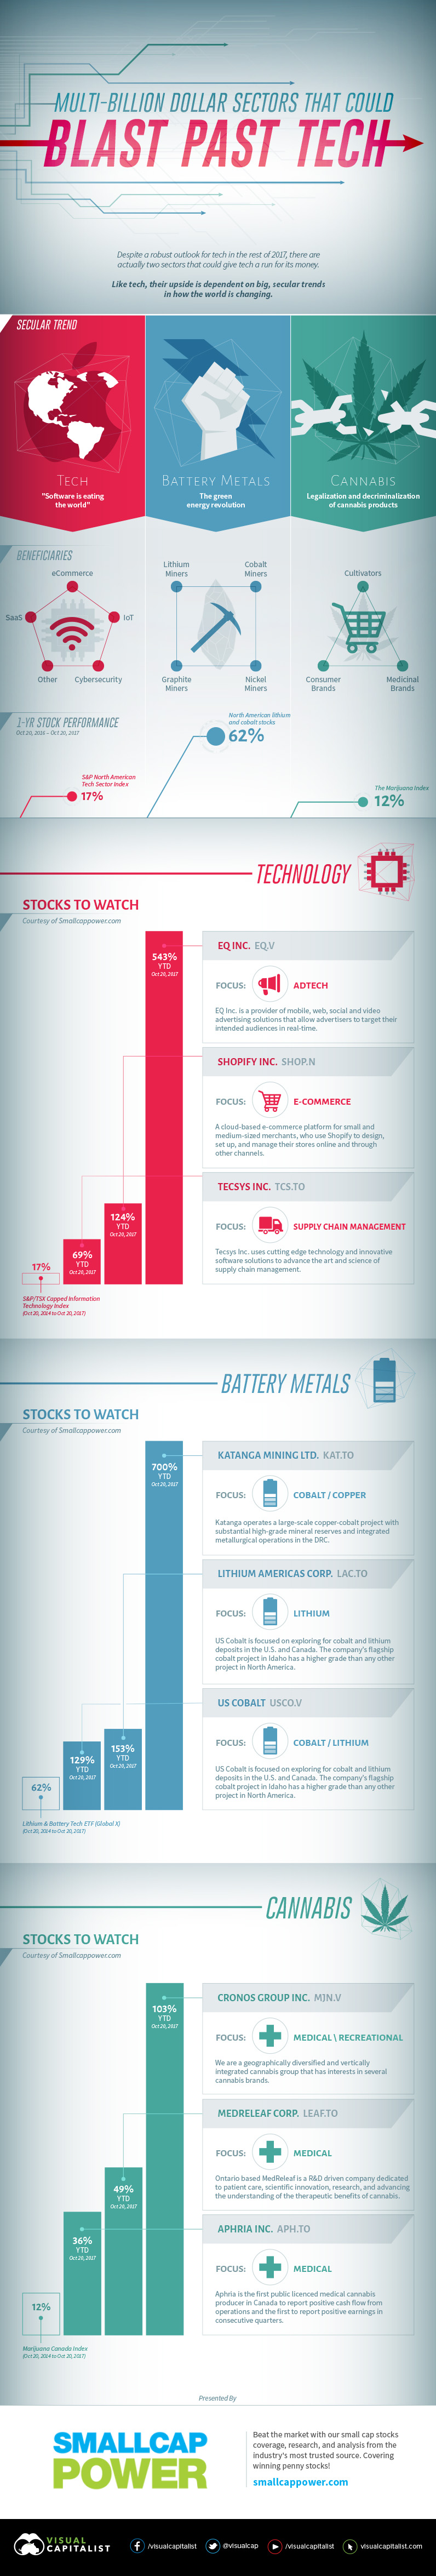 Infographic: Marijuana Stocks Vs Battery Metals Stocks Vs Tech